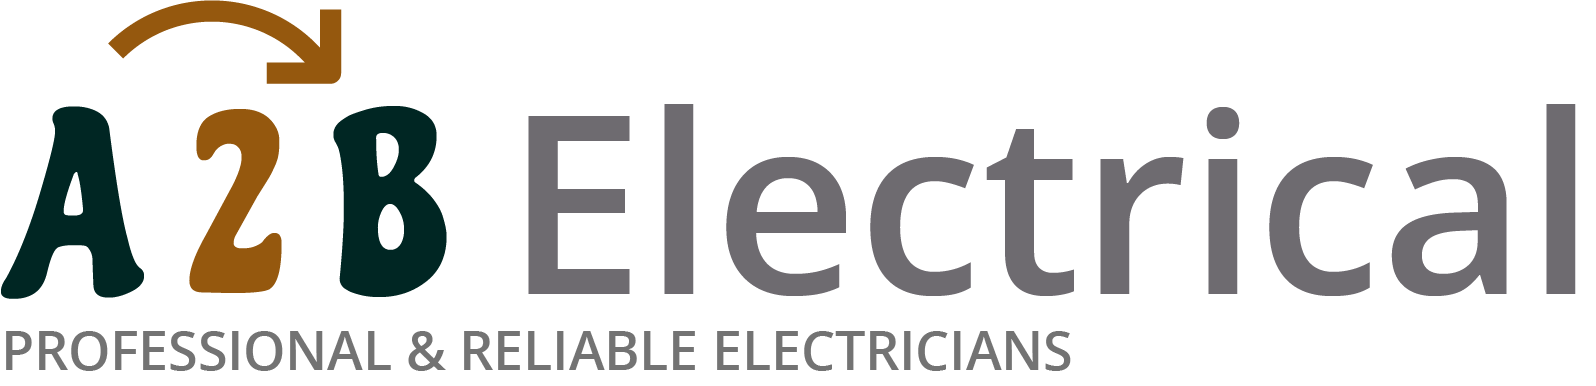 If you have electrical wiring problems in Dalston, we can provide an electrician to have a look for you.